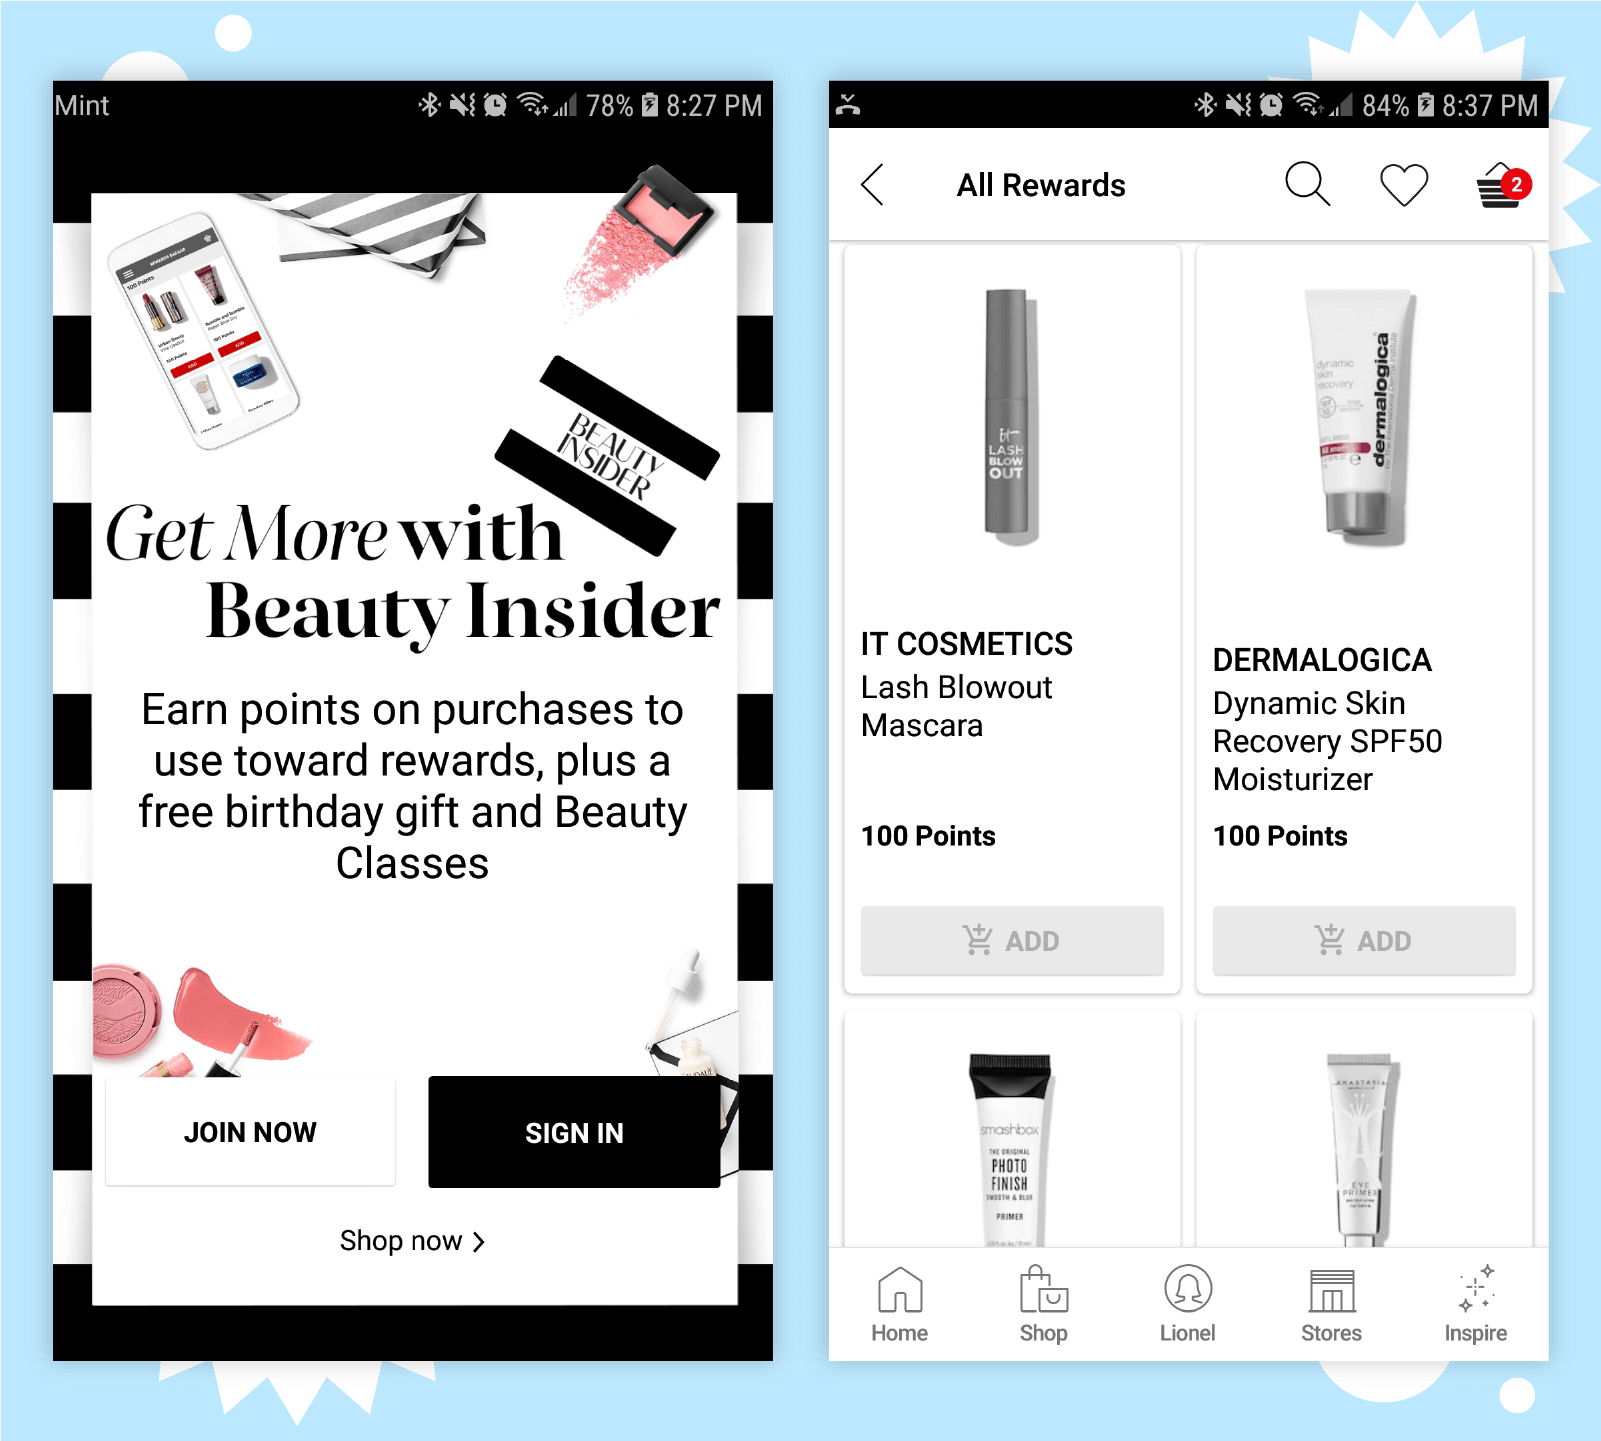 Relationship marketing by Sephora includes treating customers like VIPs